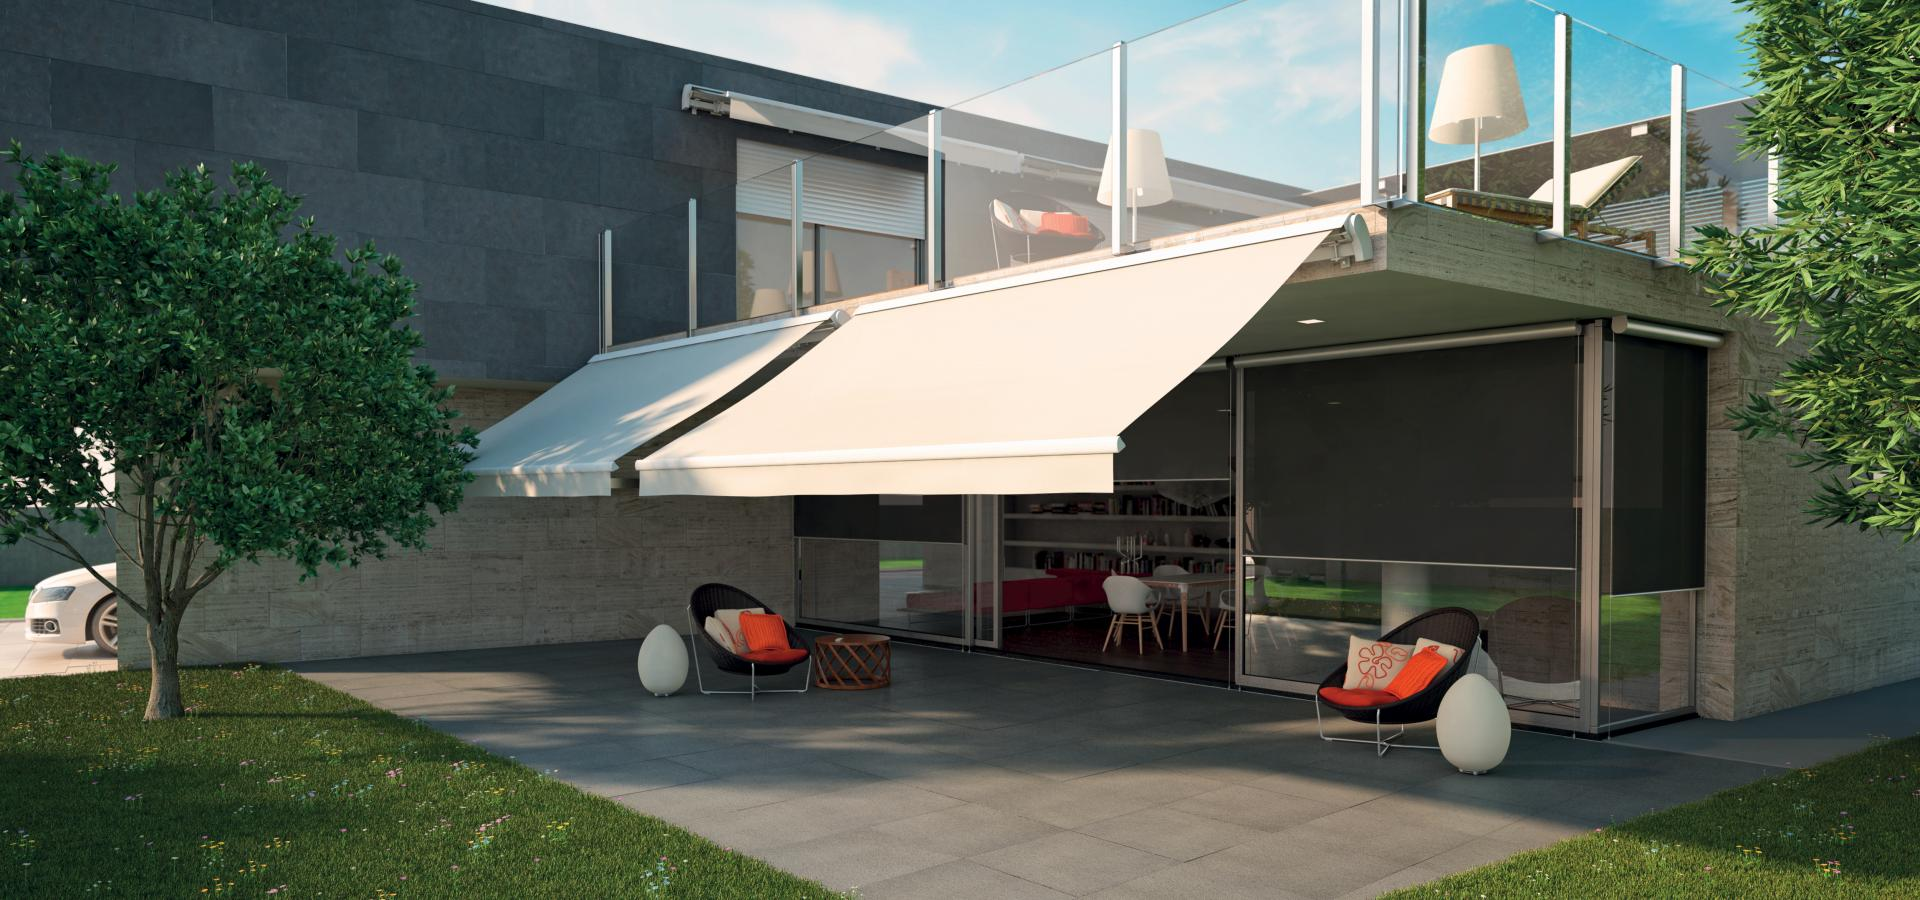 NICE Automation systems for Awnings